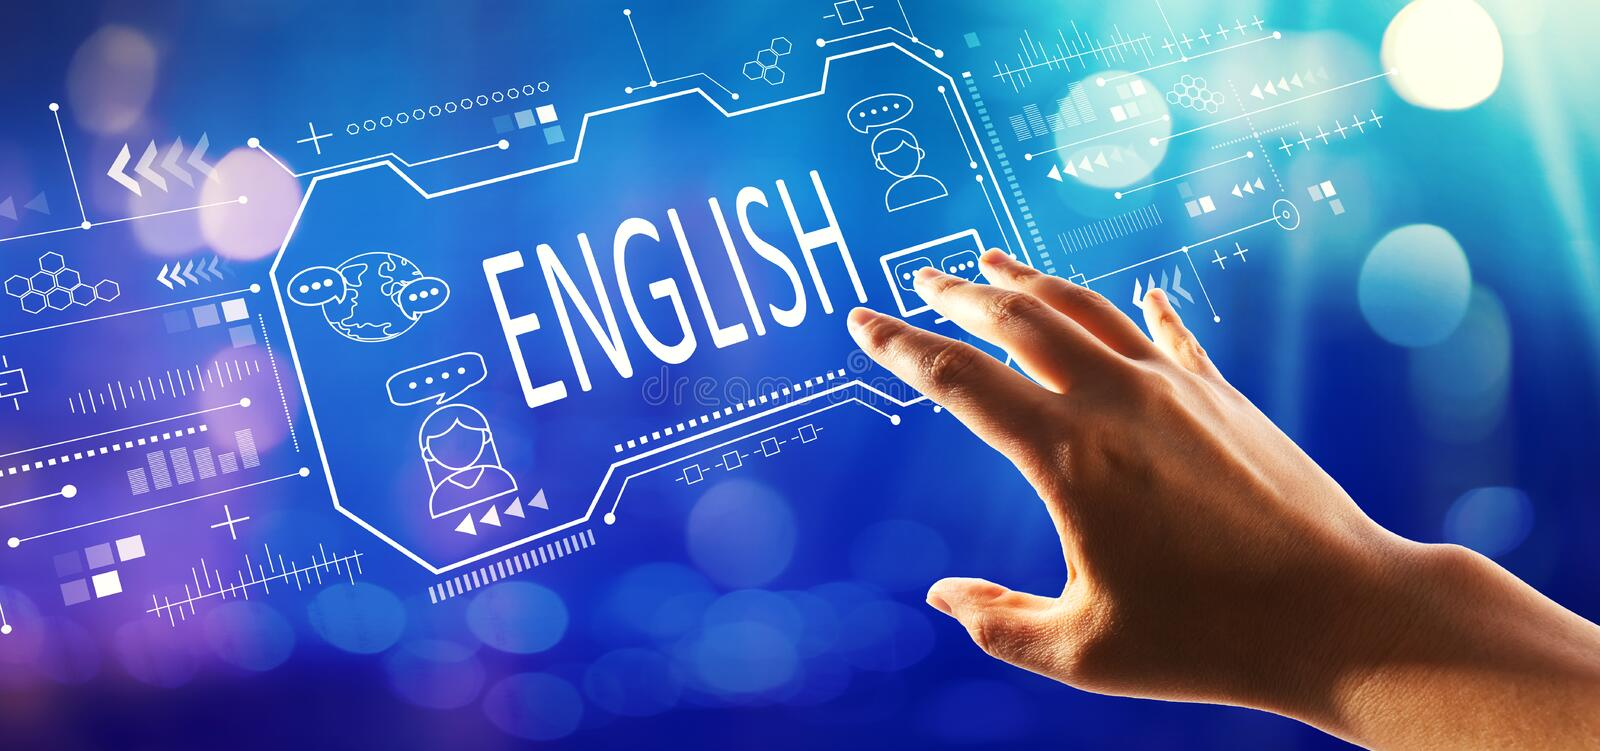 English concept with hand pressing a button royalty free stock images